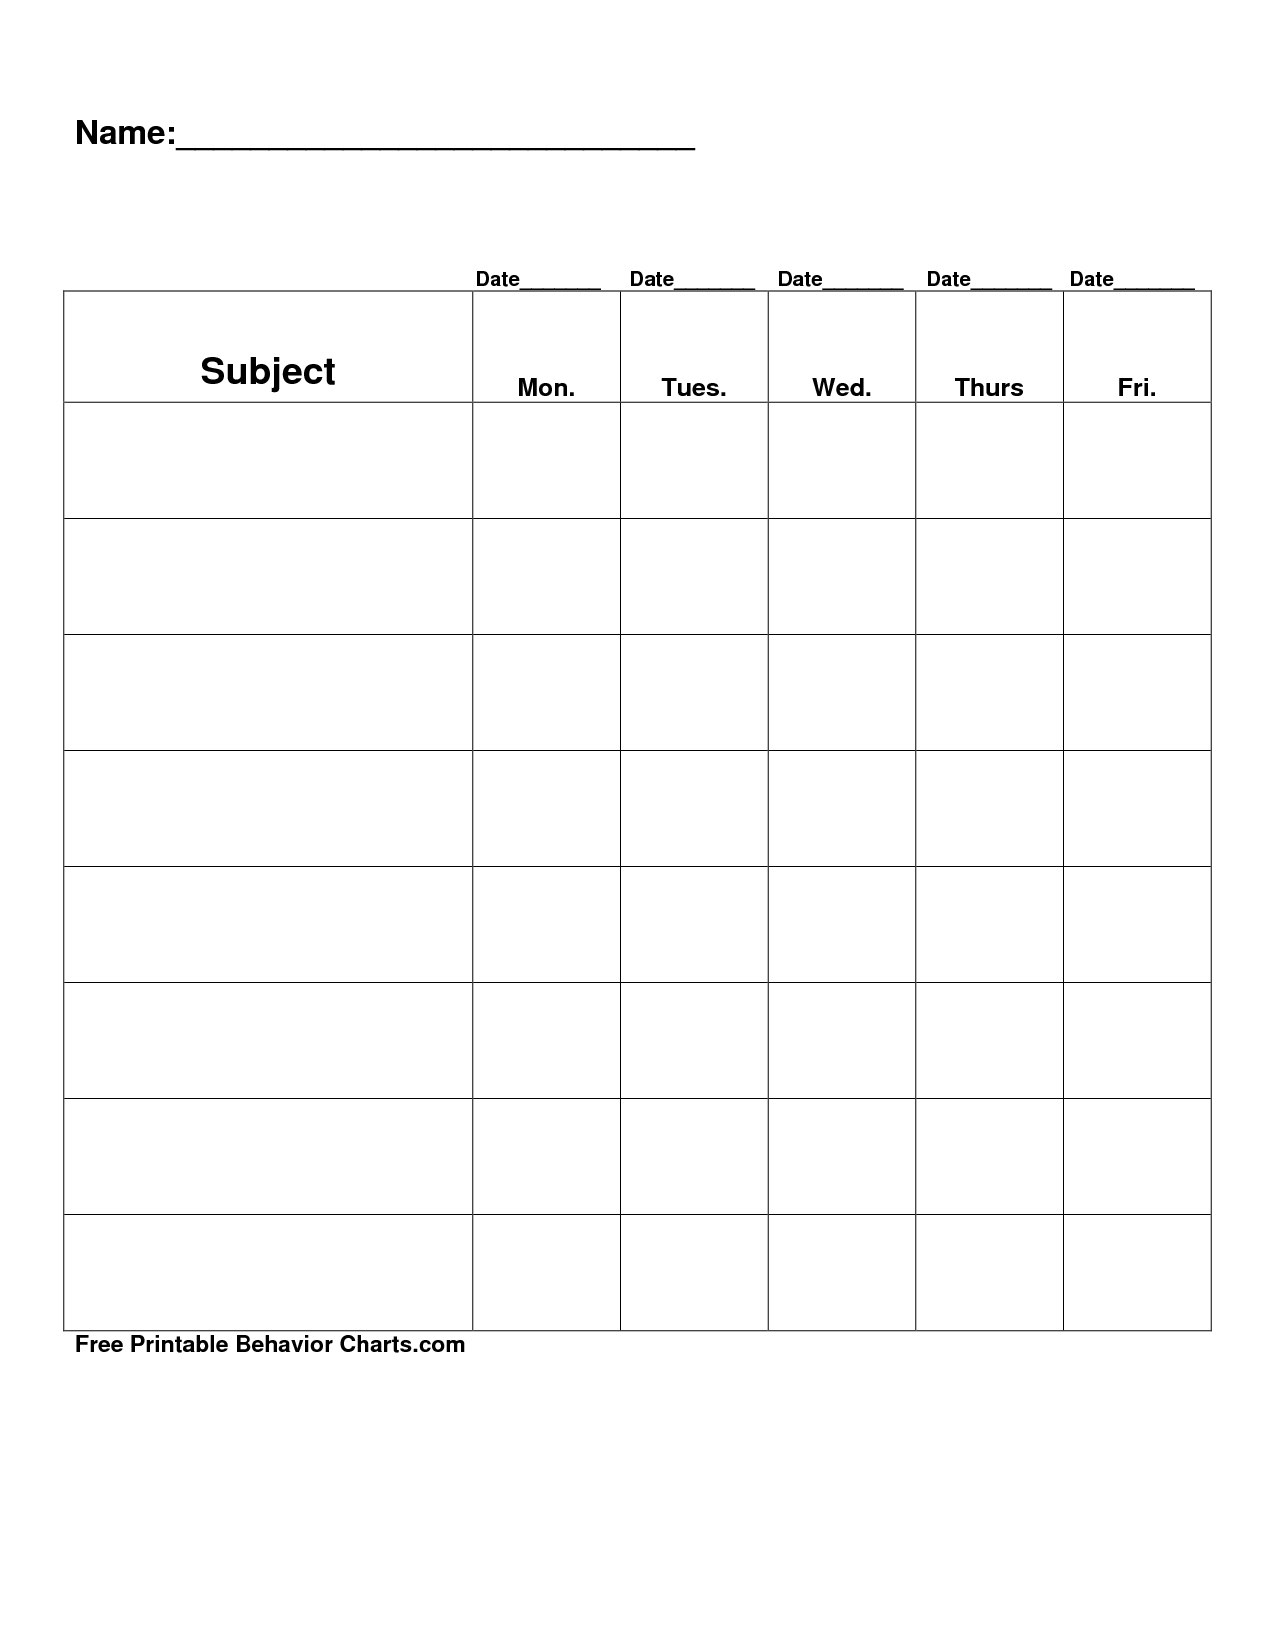 Free Printable Blank Charts | Free Printable Behavior Charts Com - Free Printable Behavior Charts